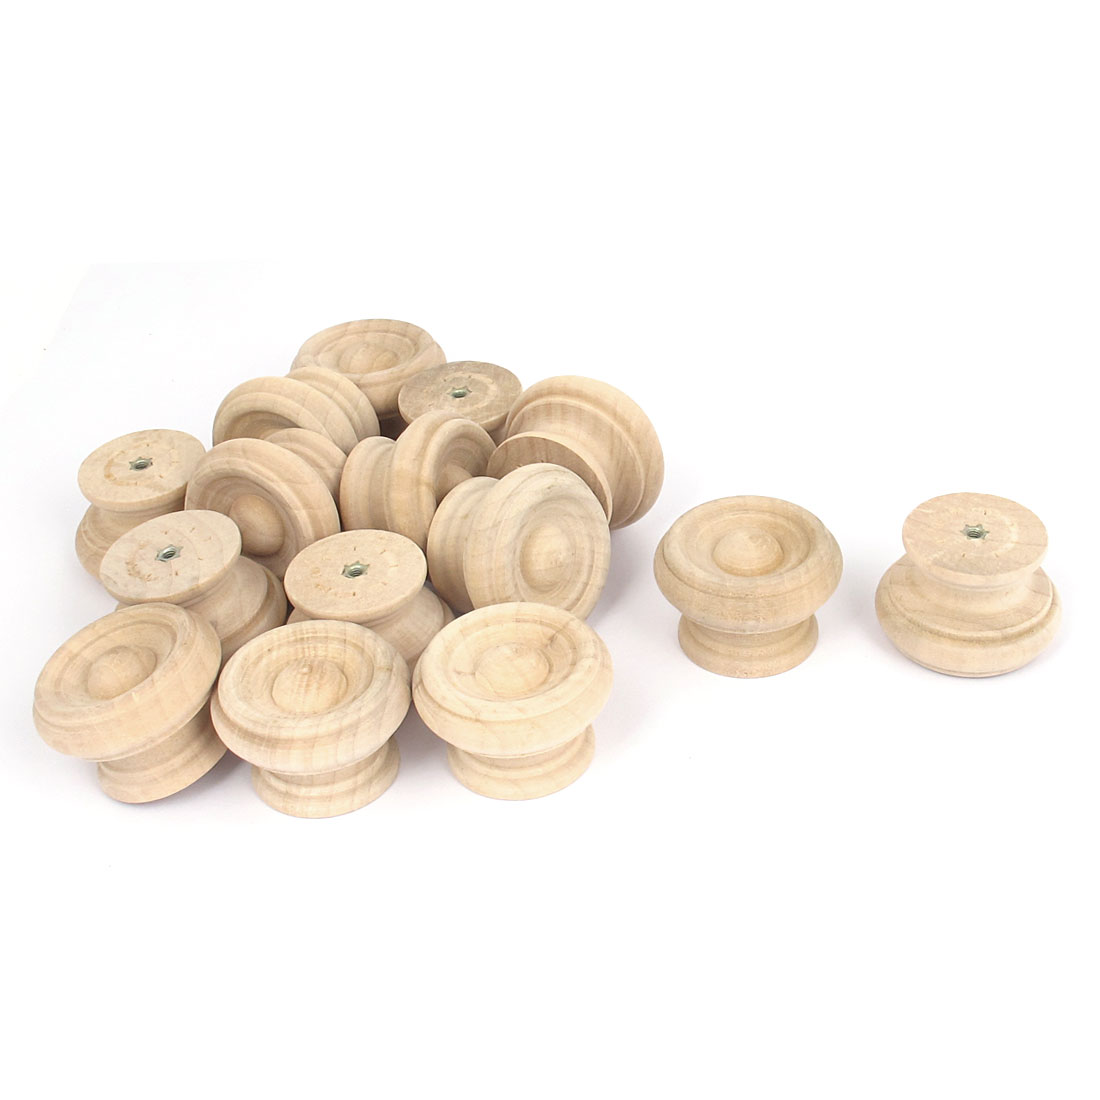 Wooden Round Shaped Cabinet Cupboard Closet Drawer Pull Knob Handle 15Pcs